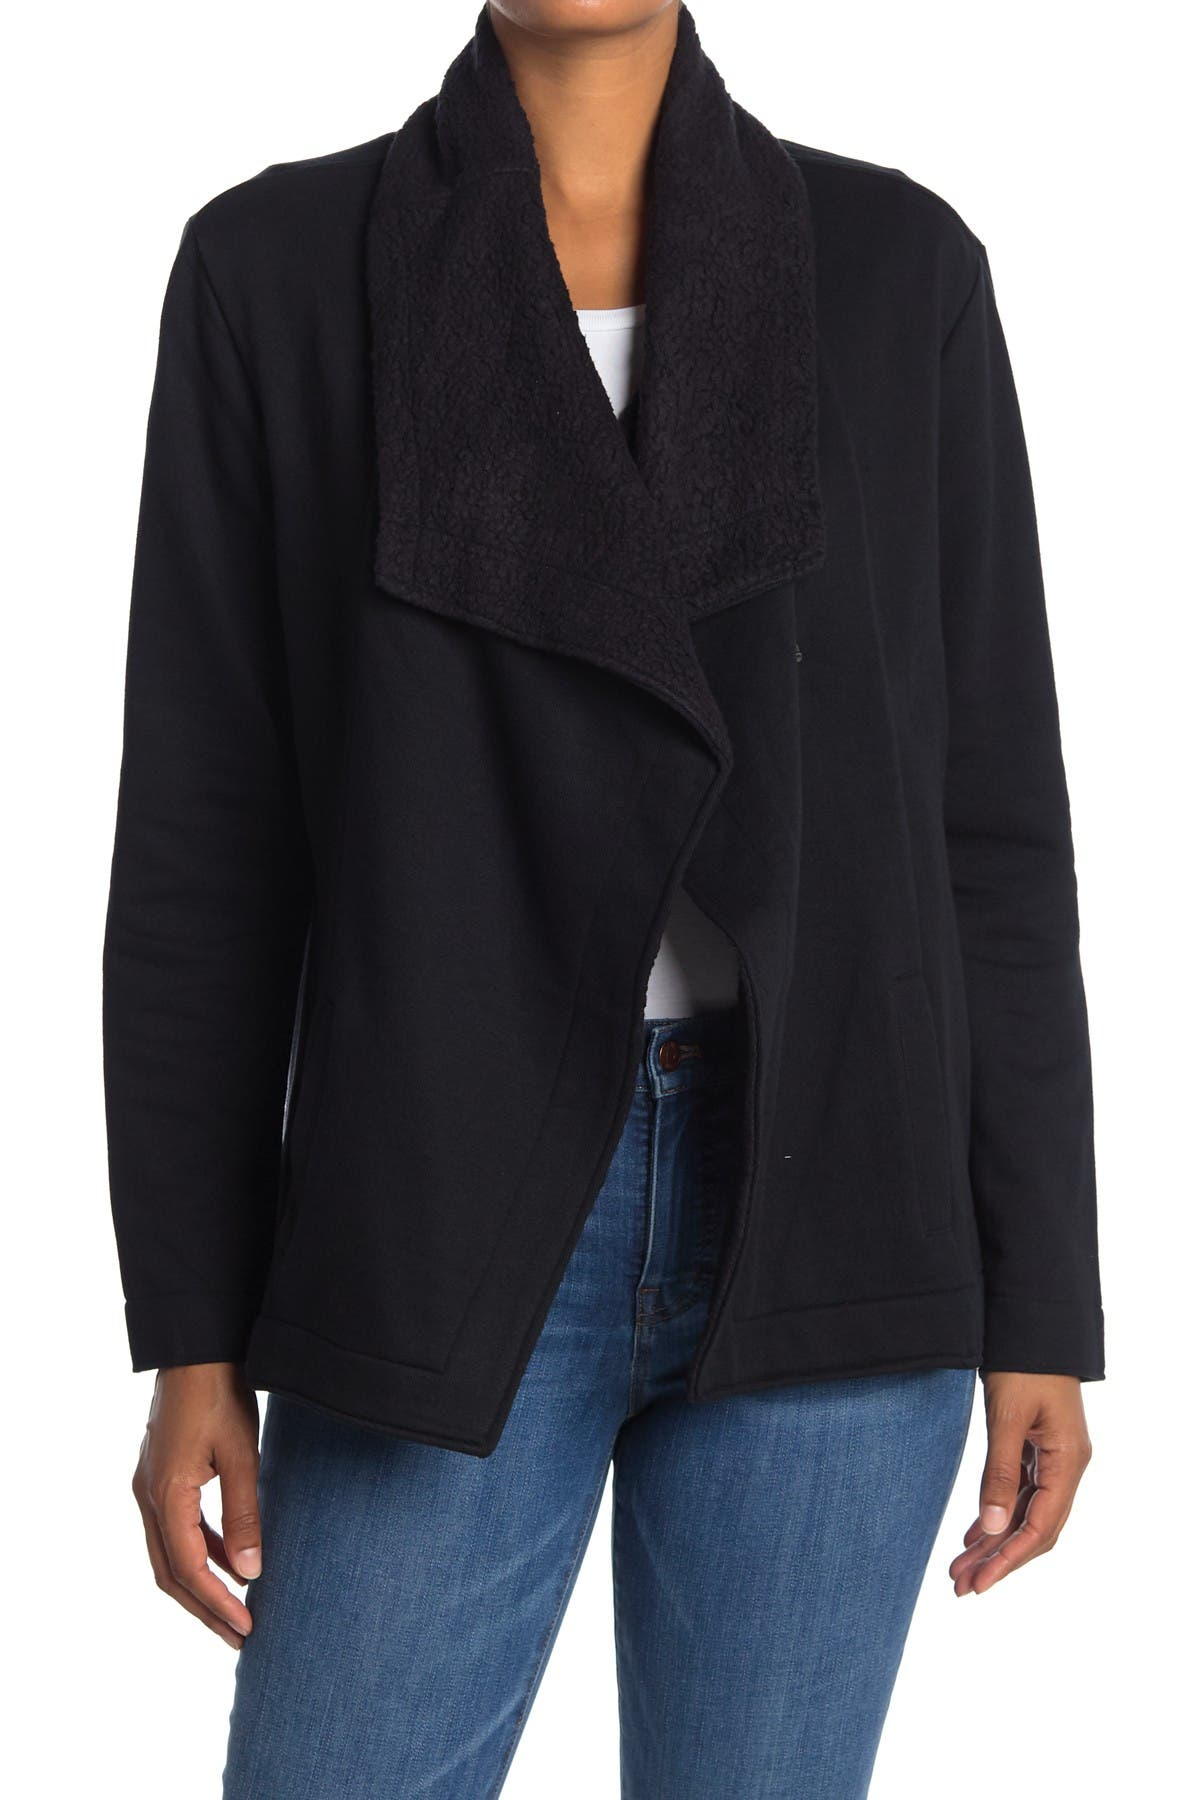 Image of JAG Jeans Tiffany Shawl Collar Faux Shearling Lined Cardigan